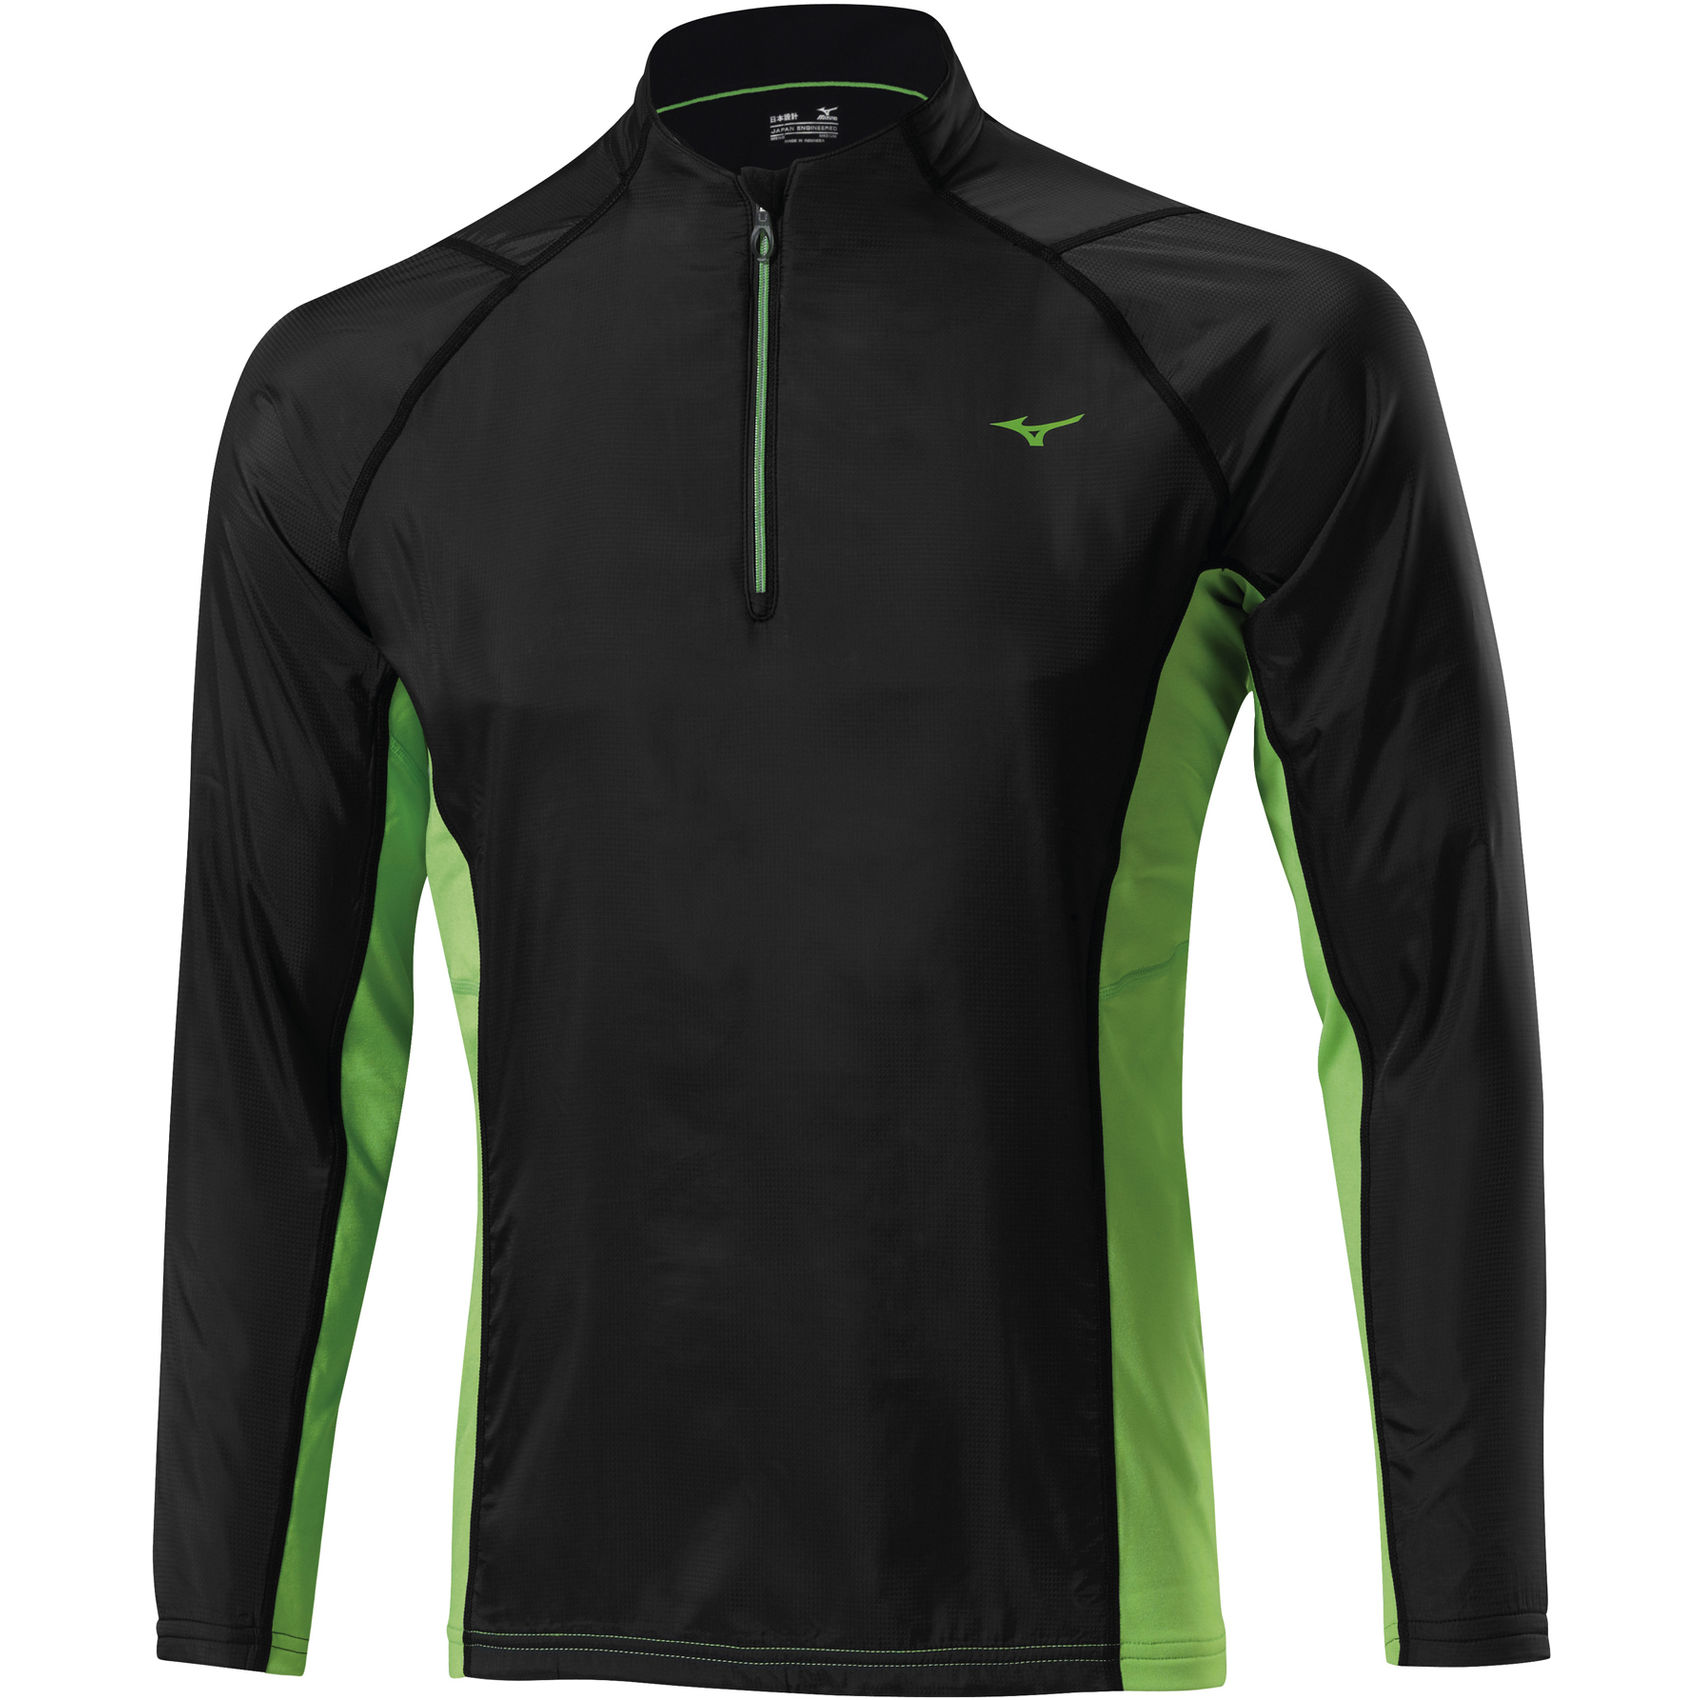 Mizuno-Breath-Thermo-WindTop-AW14-Running-Windproof-Jackets-Black-Green-AW14-J2GC450493-0